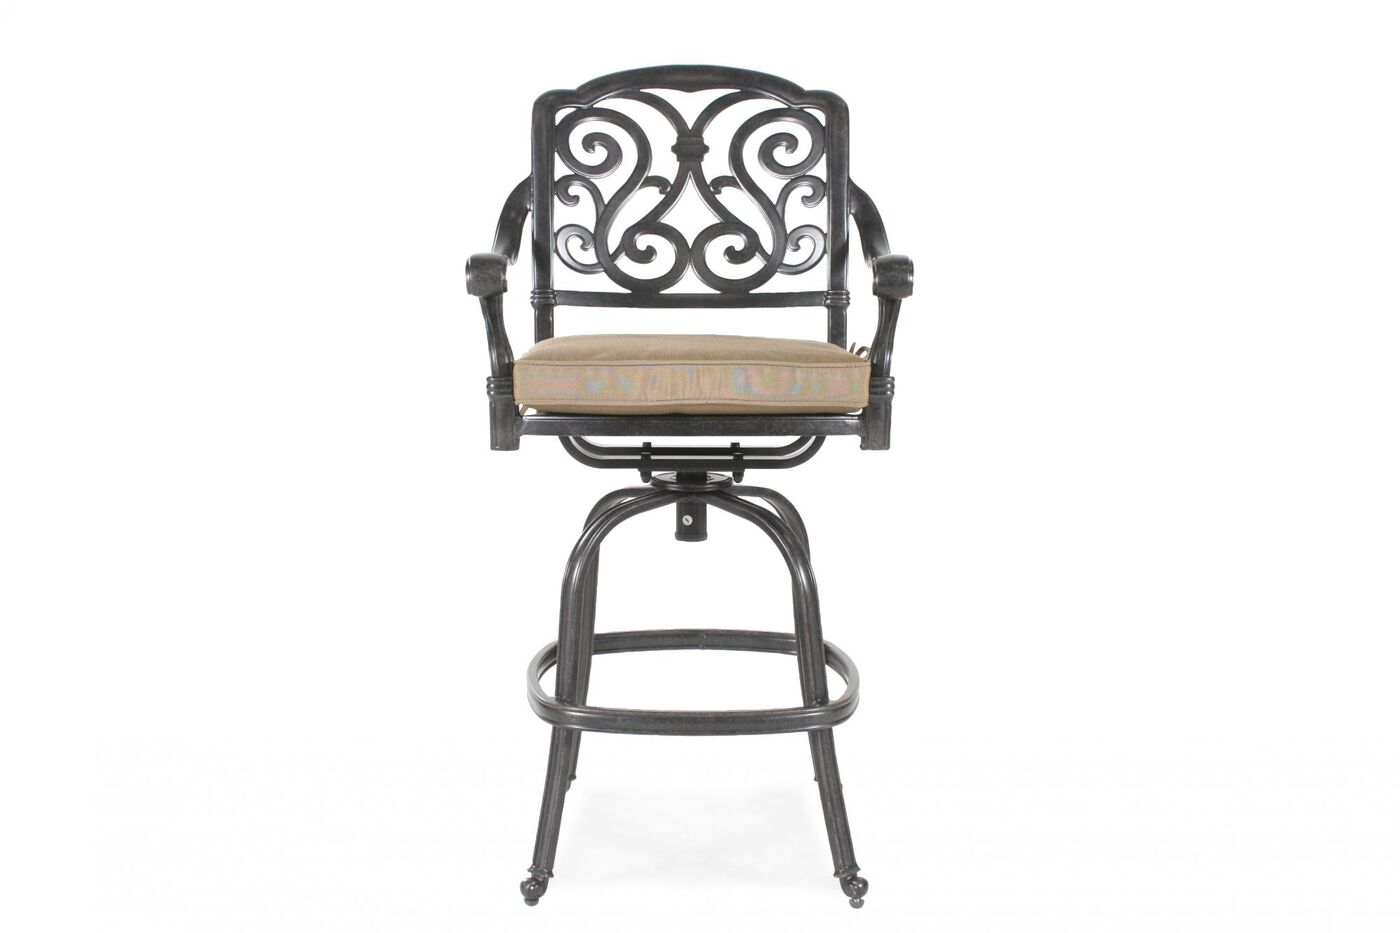 World Source St Louis Swivel Bar Stool with Cushion  : WSO LD17775E0477 from www.mathisbrothers.com size 1400 x 933 jpeg 57kB